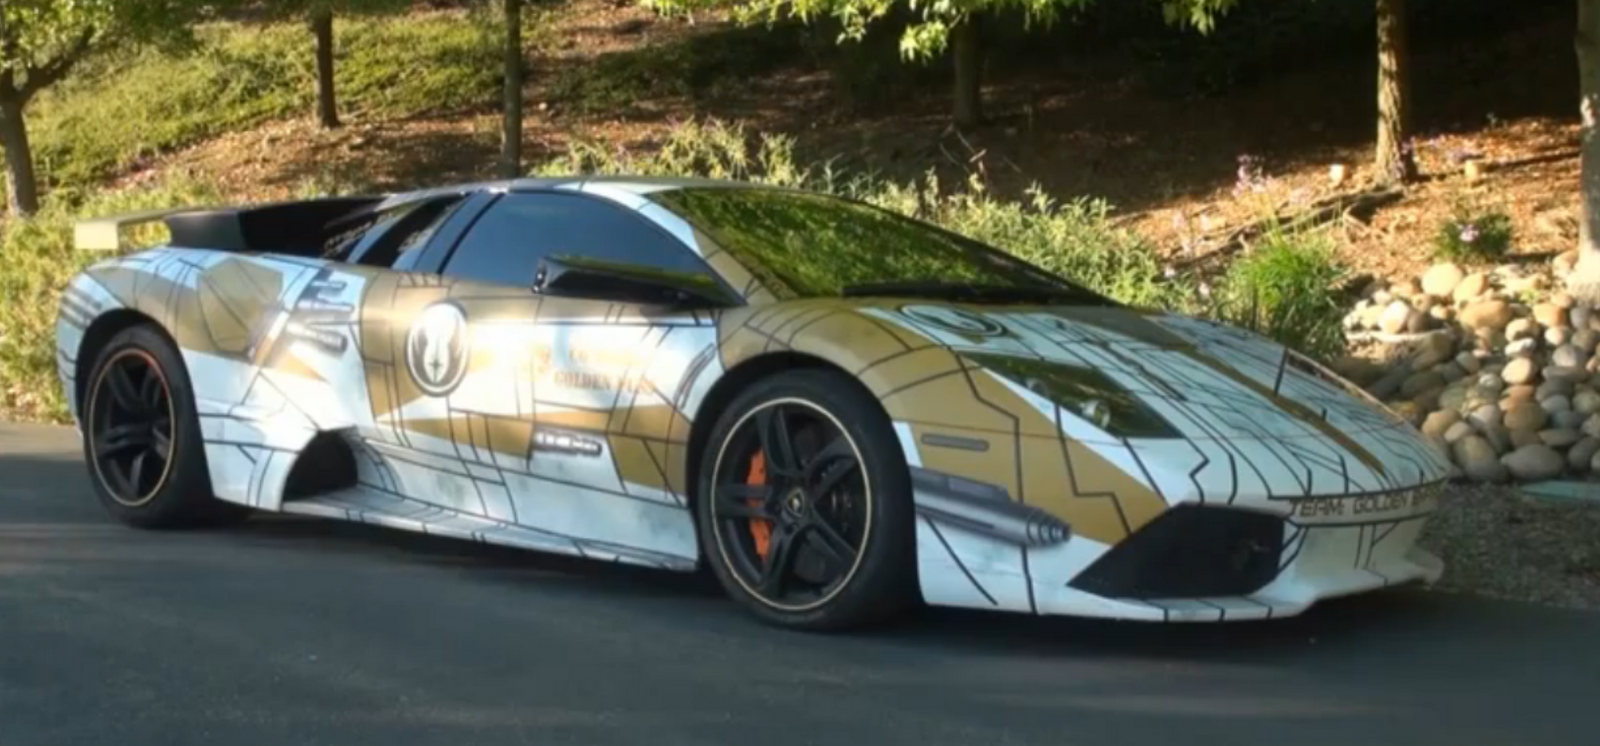 The FORCE Runs Strong With This STAR WARS Lamborghini Murcielago LP640